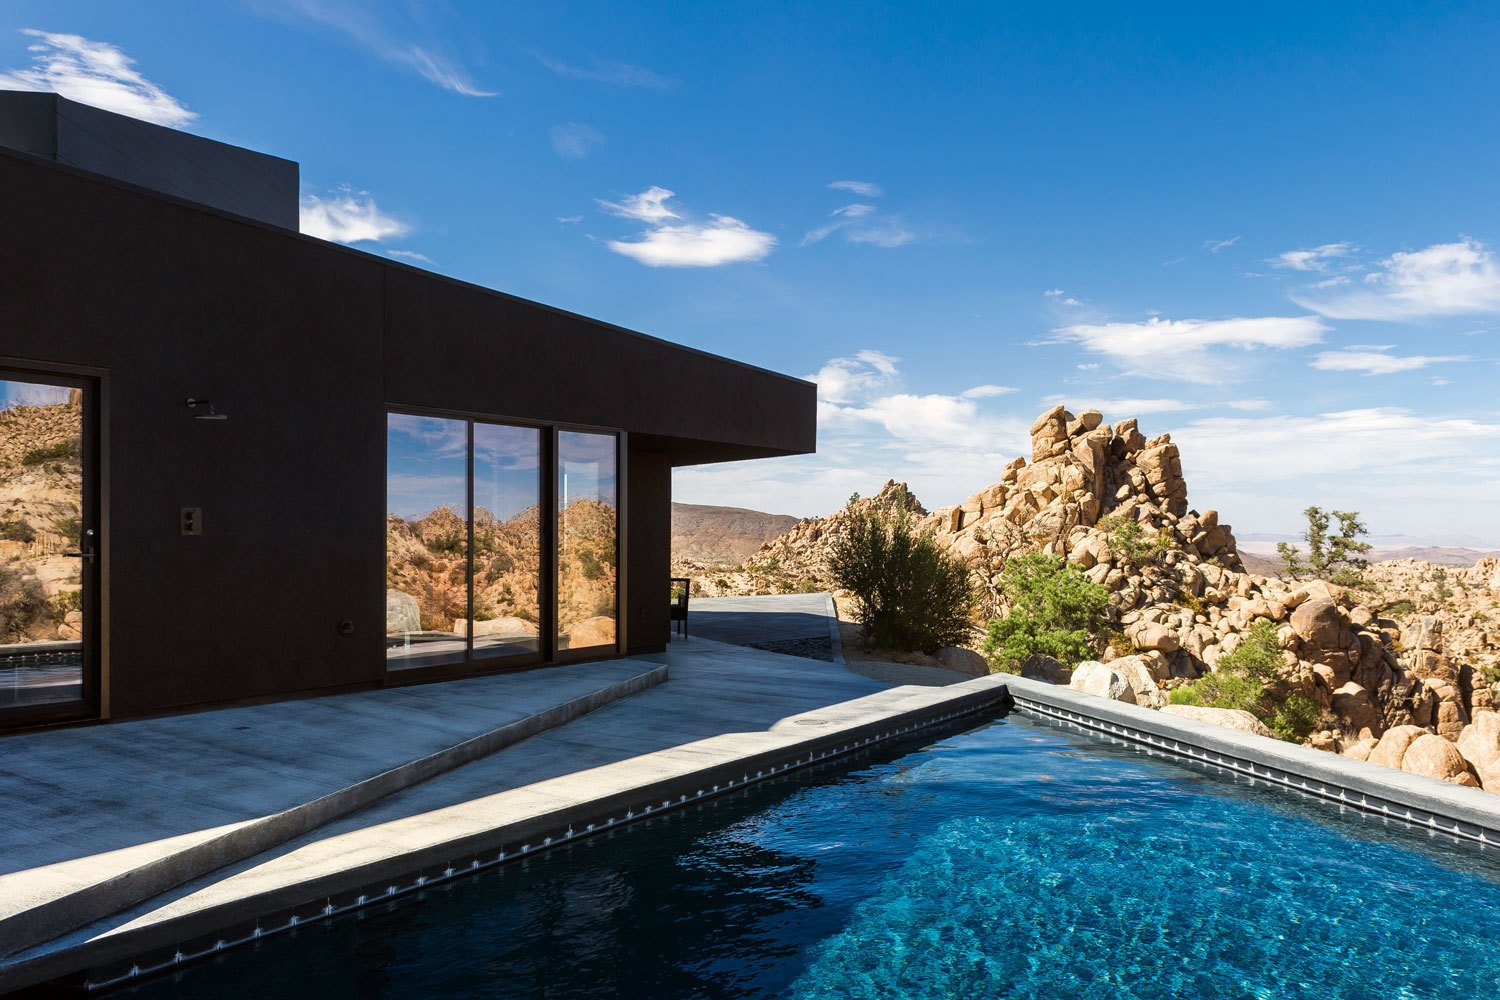 An unadorned black façade echoes the homeowners' brief but compelling instructions to the architects to design a house like a shadow.  Photo 4 of 8 in A Sculptural Desert Escape Inspired by a Shadow